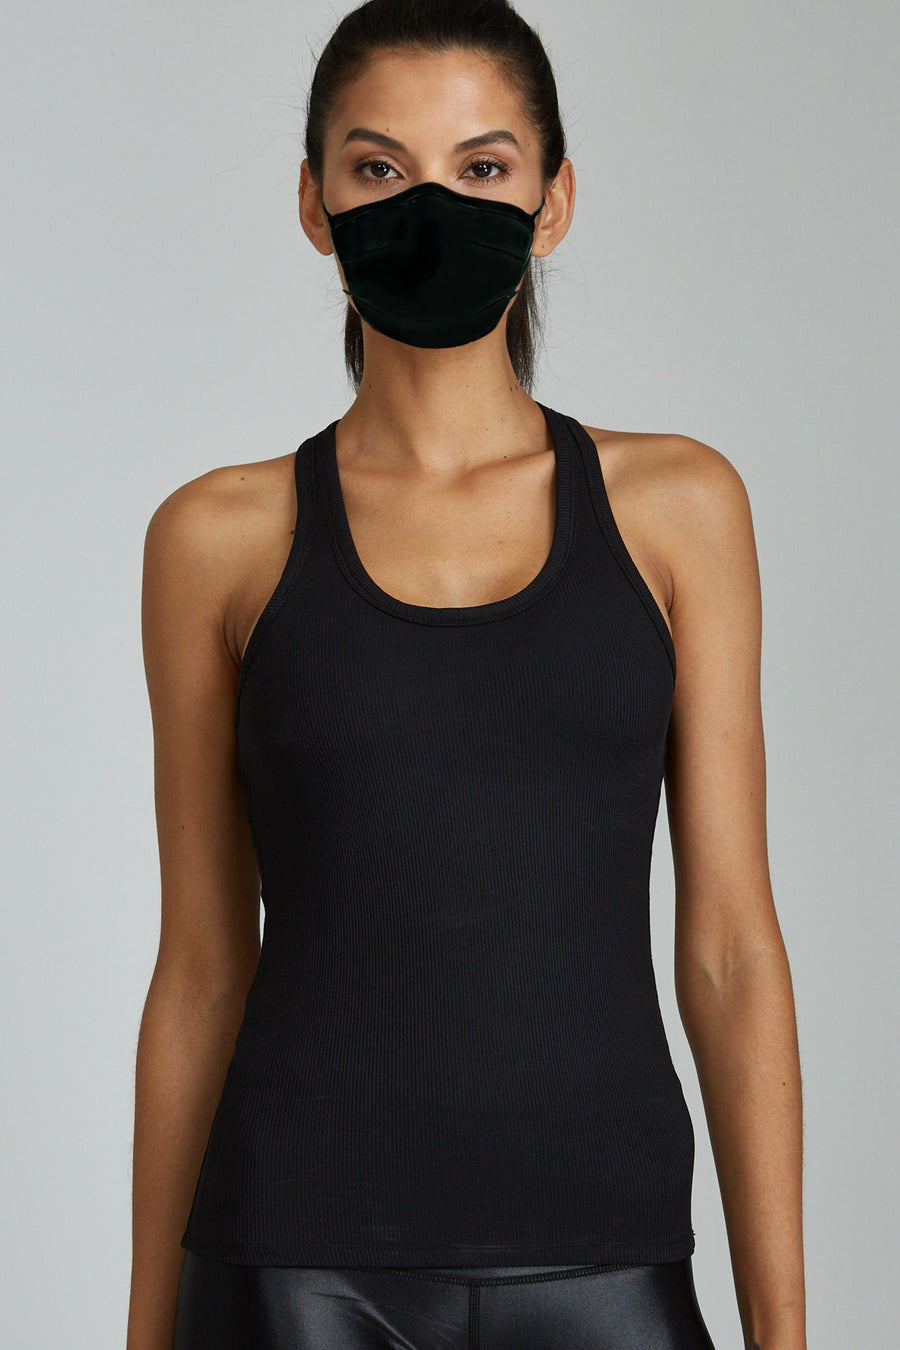 Woman wearing Black Face Mask and Black Tank Top